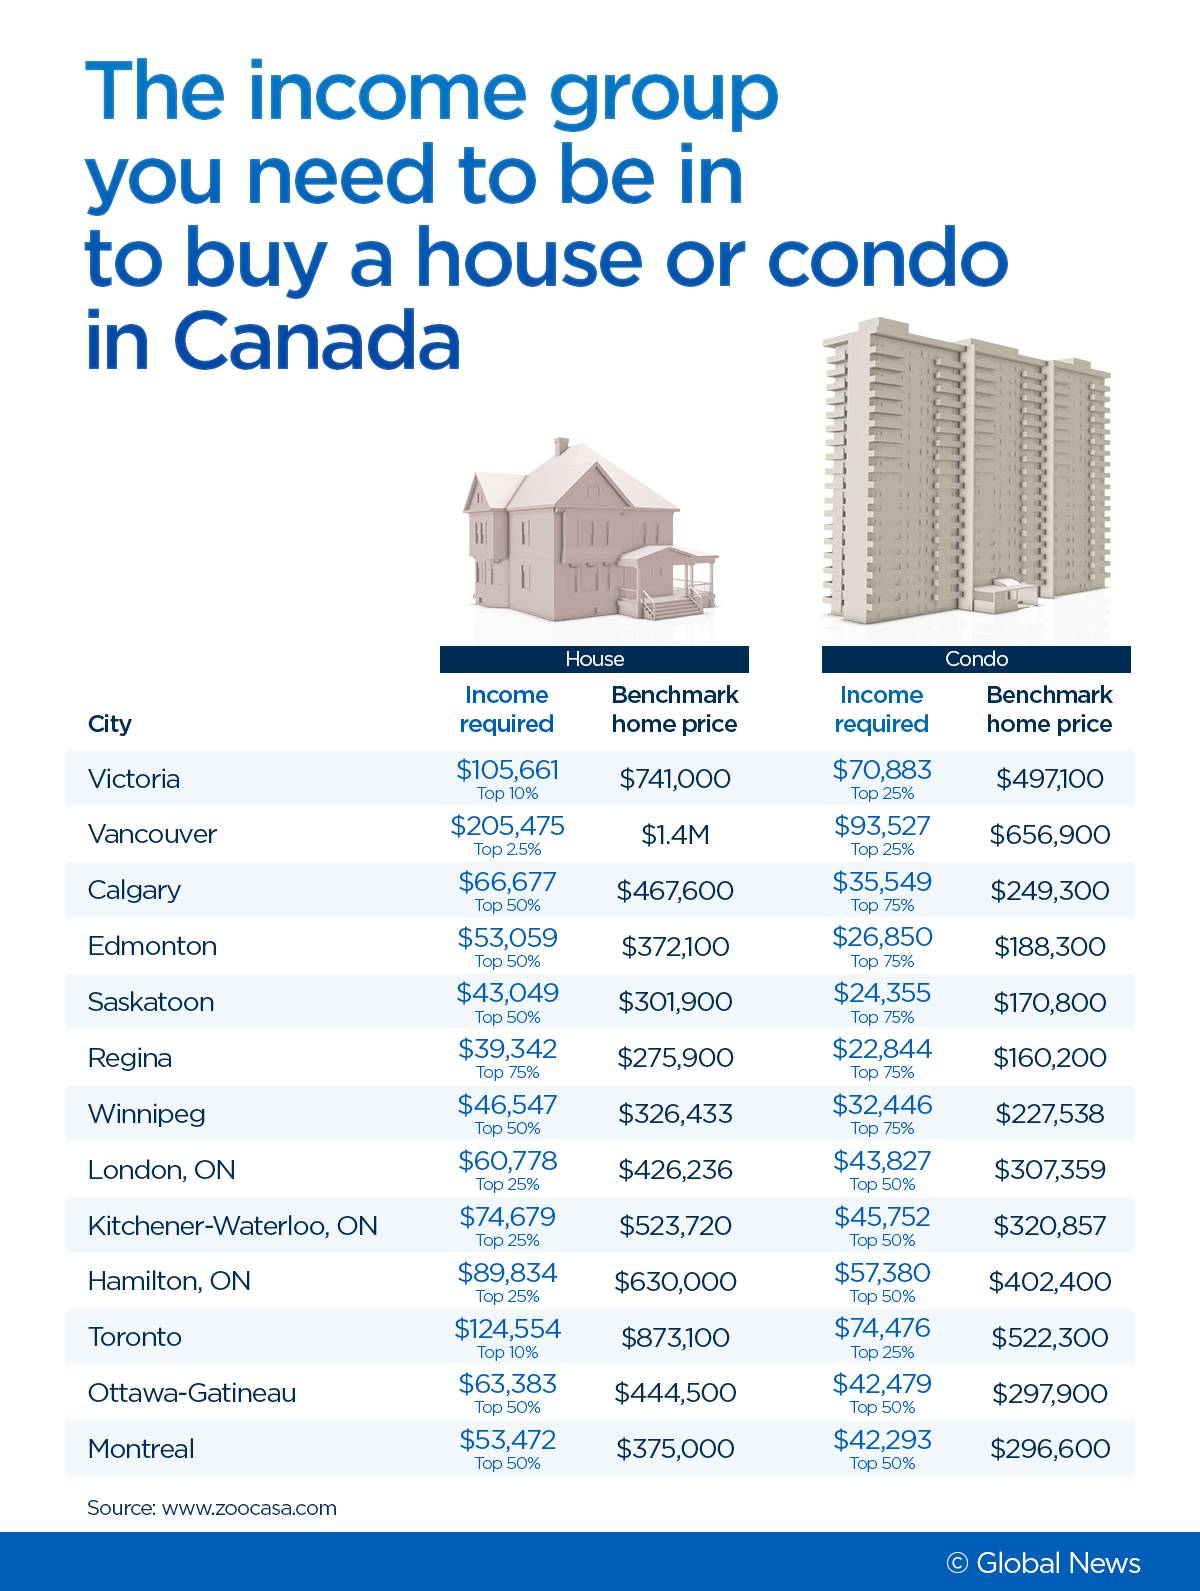 How High On The Income Ladder Do You Need To Be To Afford A Home In Canada?